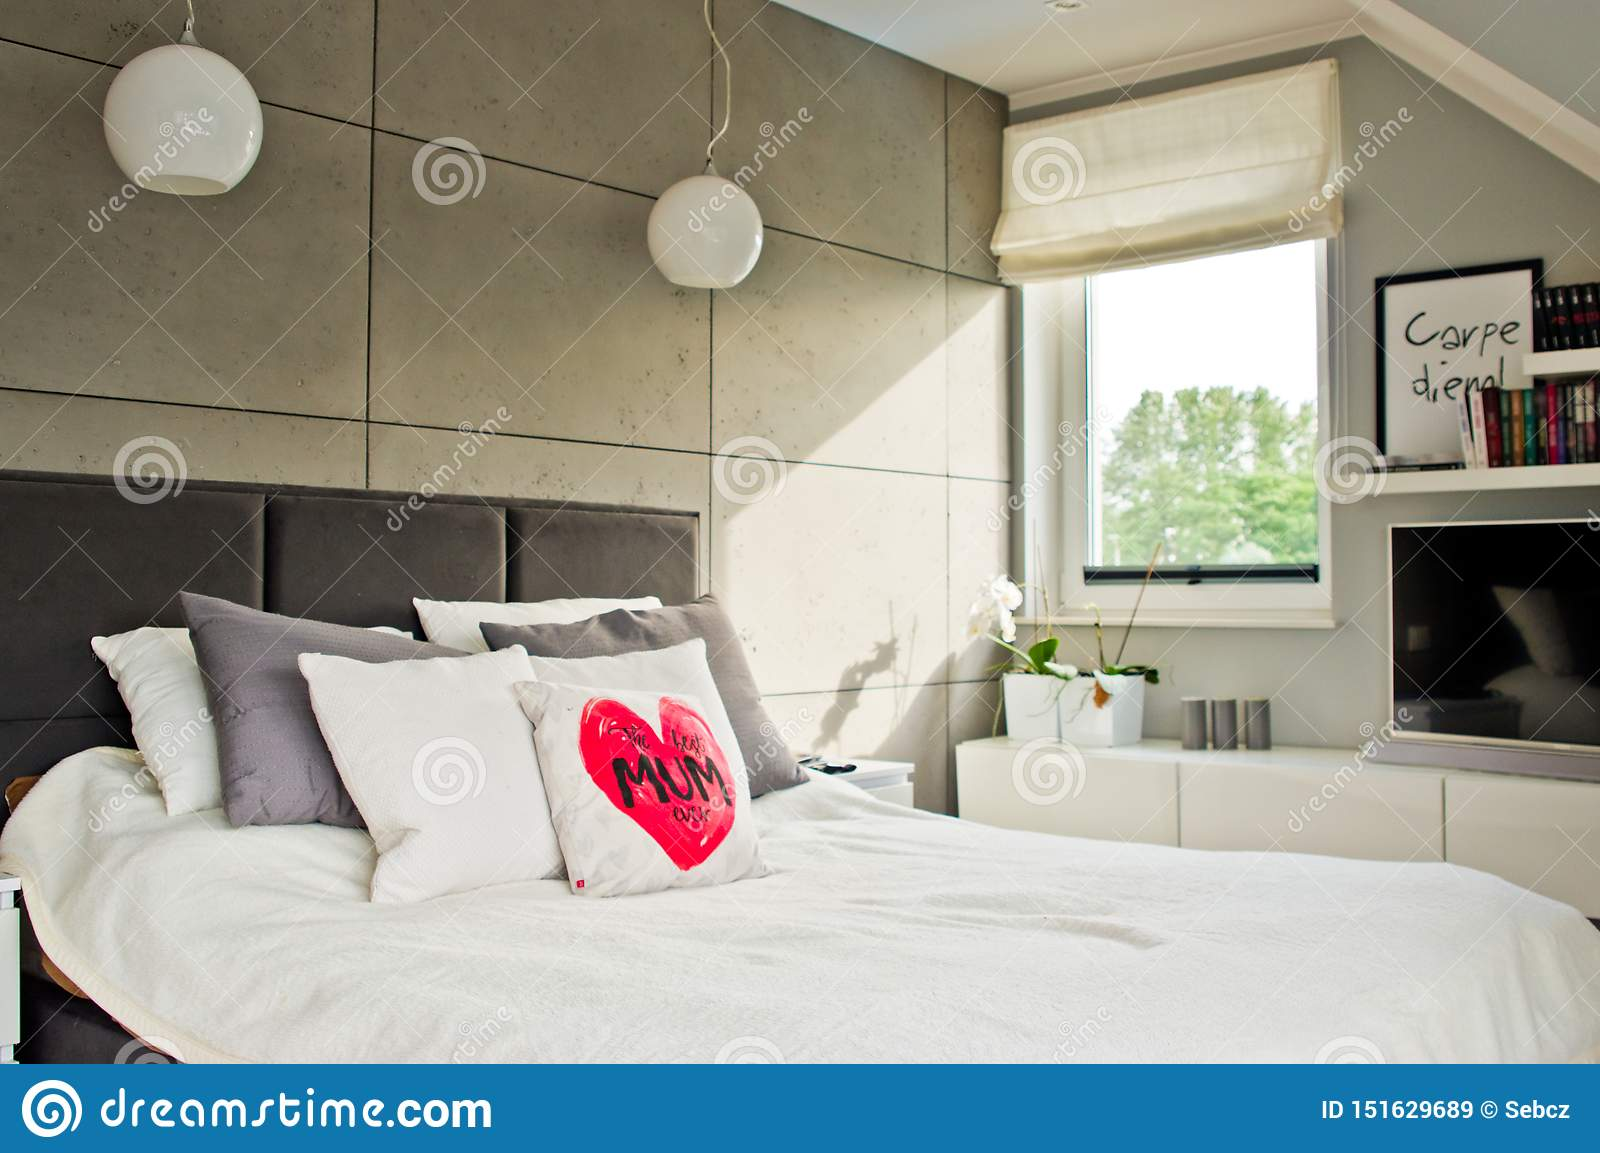 Elegant Modern Bedroom With Natural Daylight From The Window Stock Image Image Of Window Television 151629689